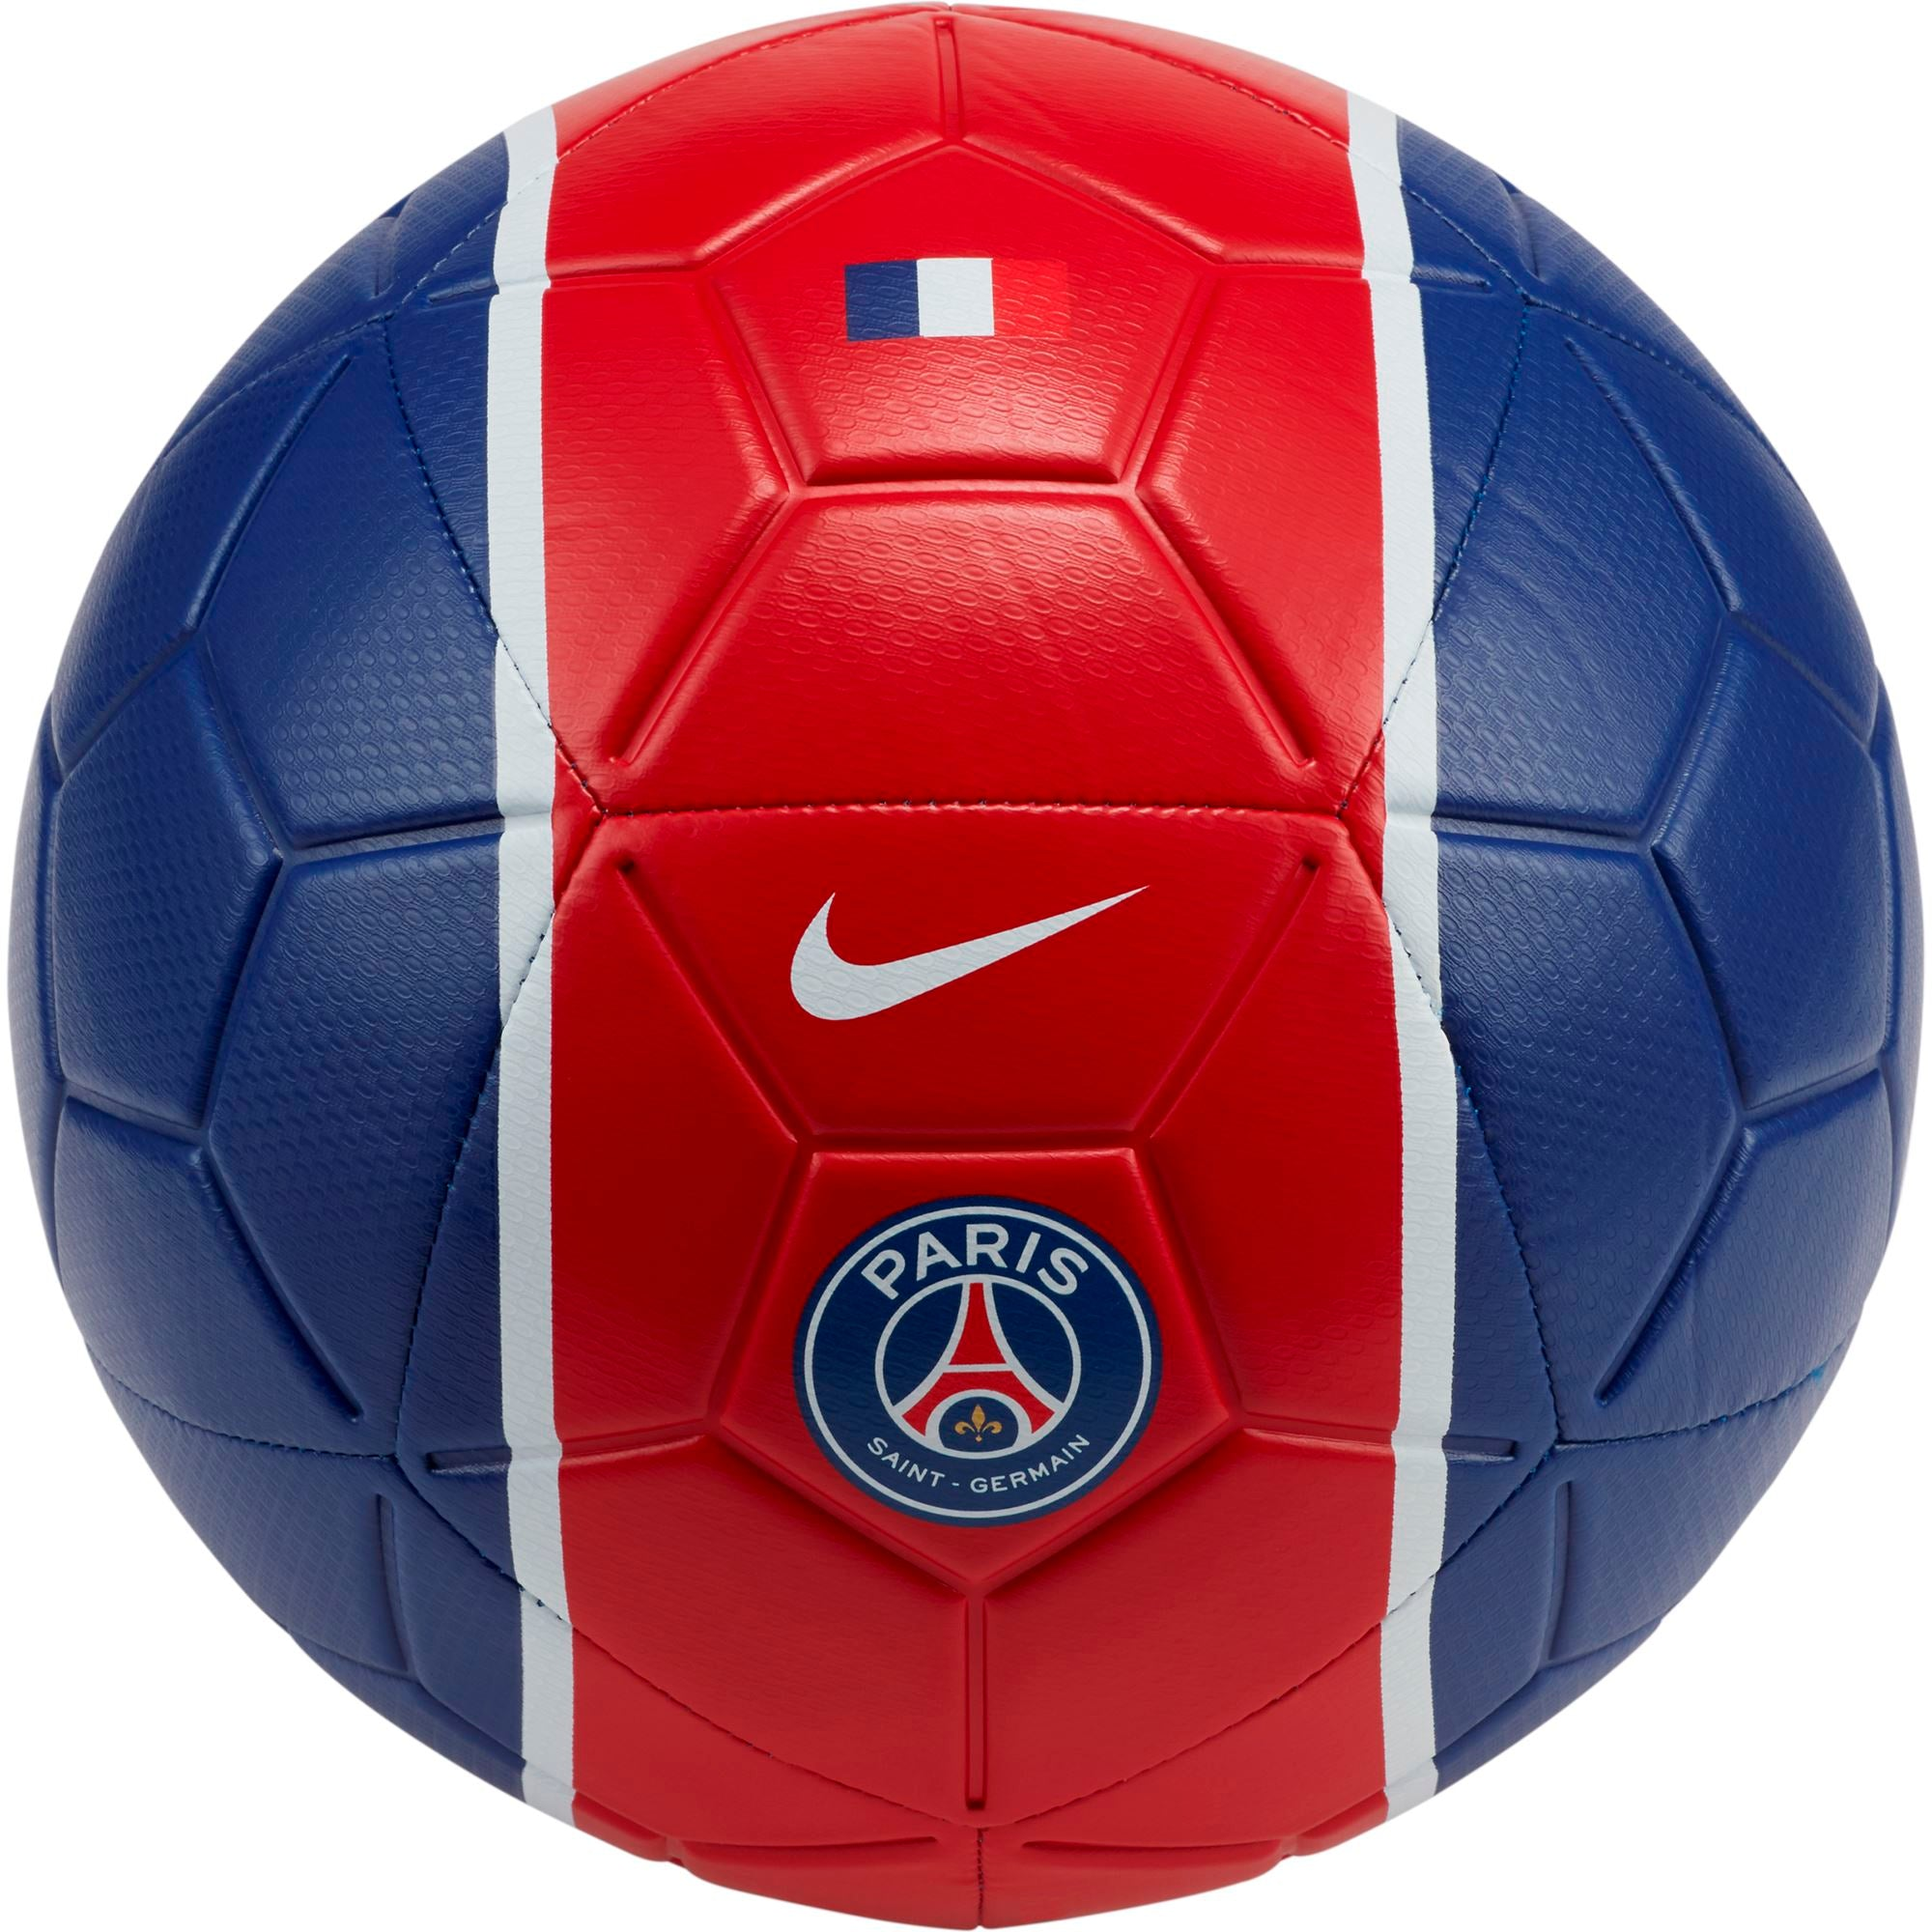 Nike Paris Saint-Germain Strike Soccer Ball - Midnight Navy/University Red/White SP-Balls-Soccer Nike